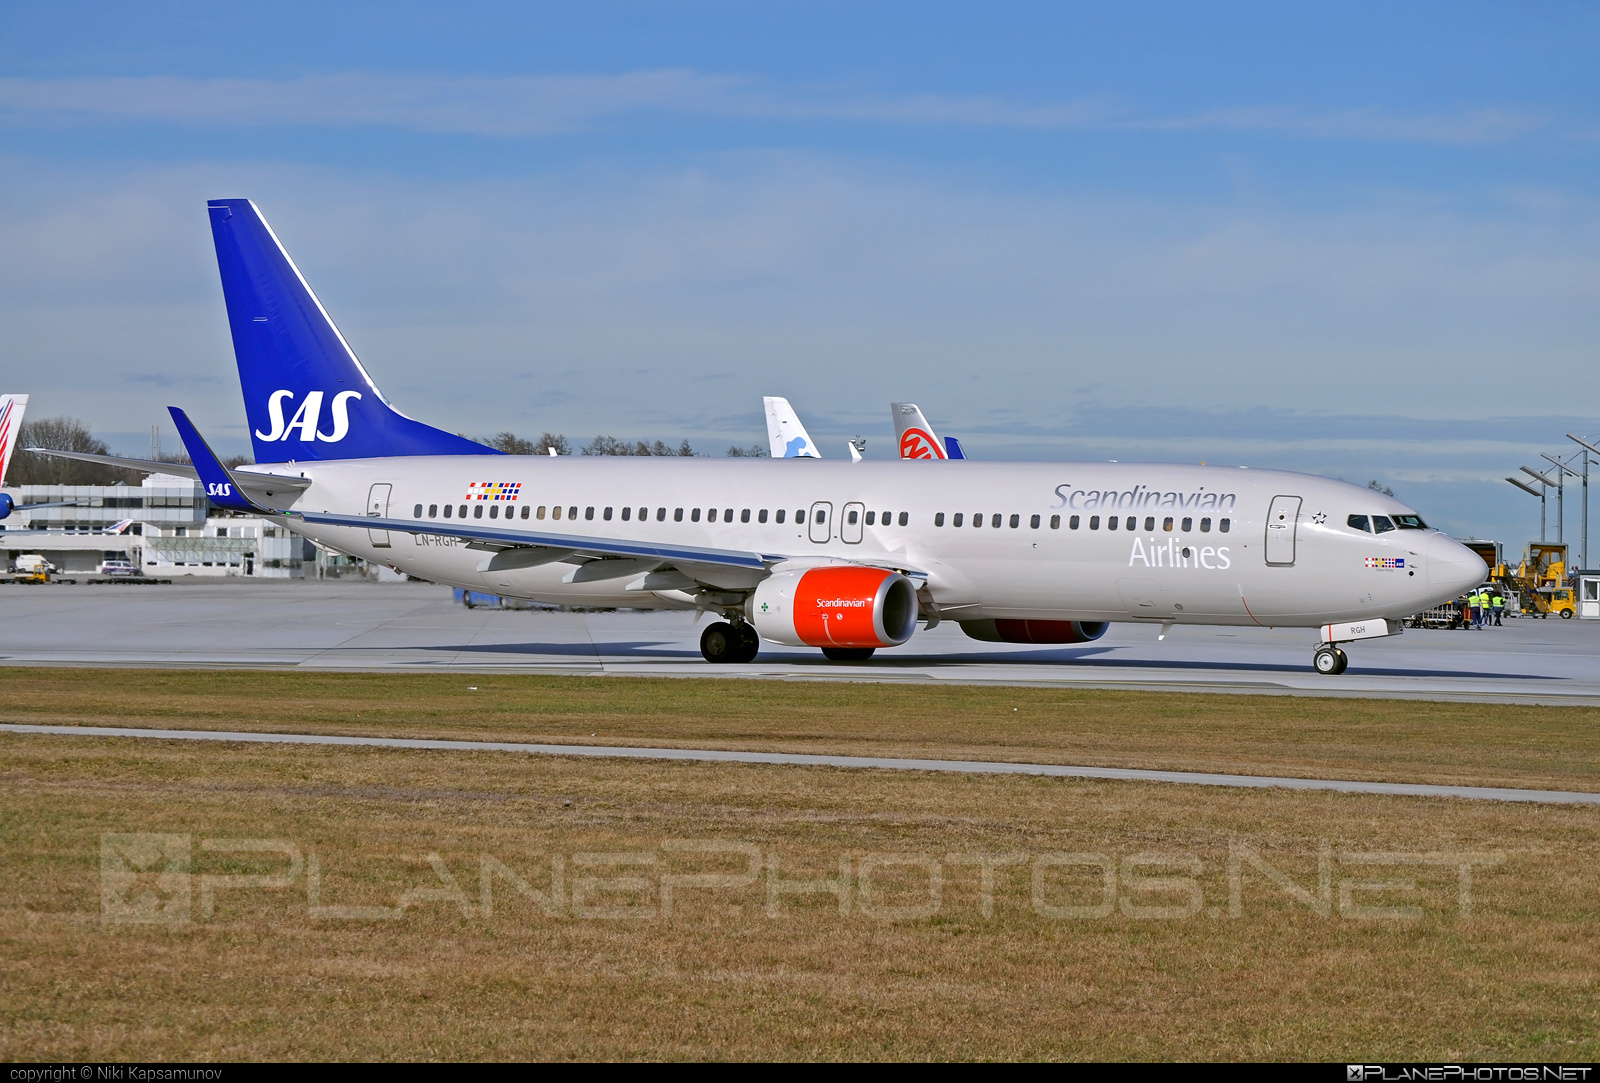 Boeing 737-800 - LN-RGH operated by Scandinavian Airlines (SAS) #b737 #b737nextgen #b737ng #boeing #boeing737 #sas #sasairlines #scandinavianairlines